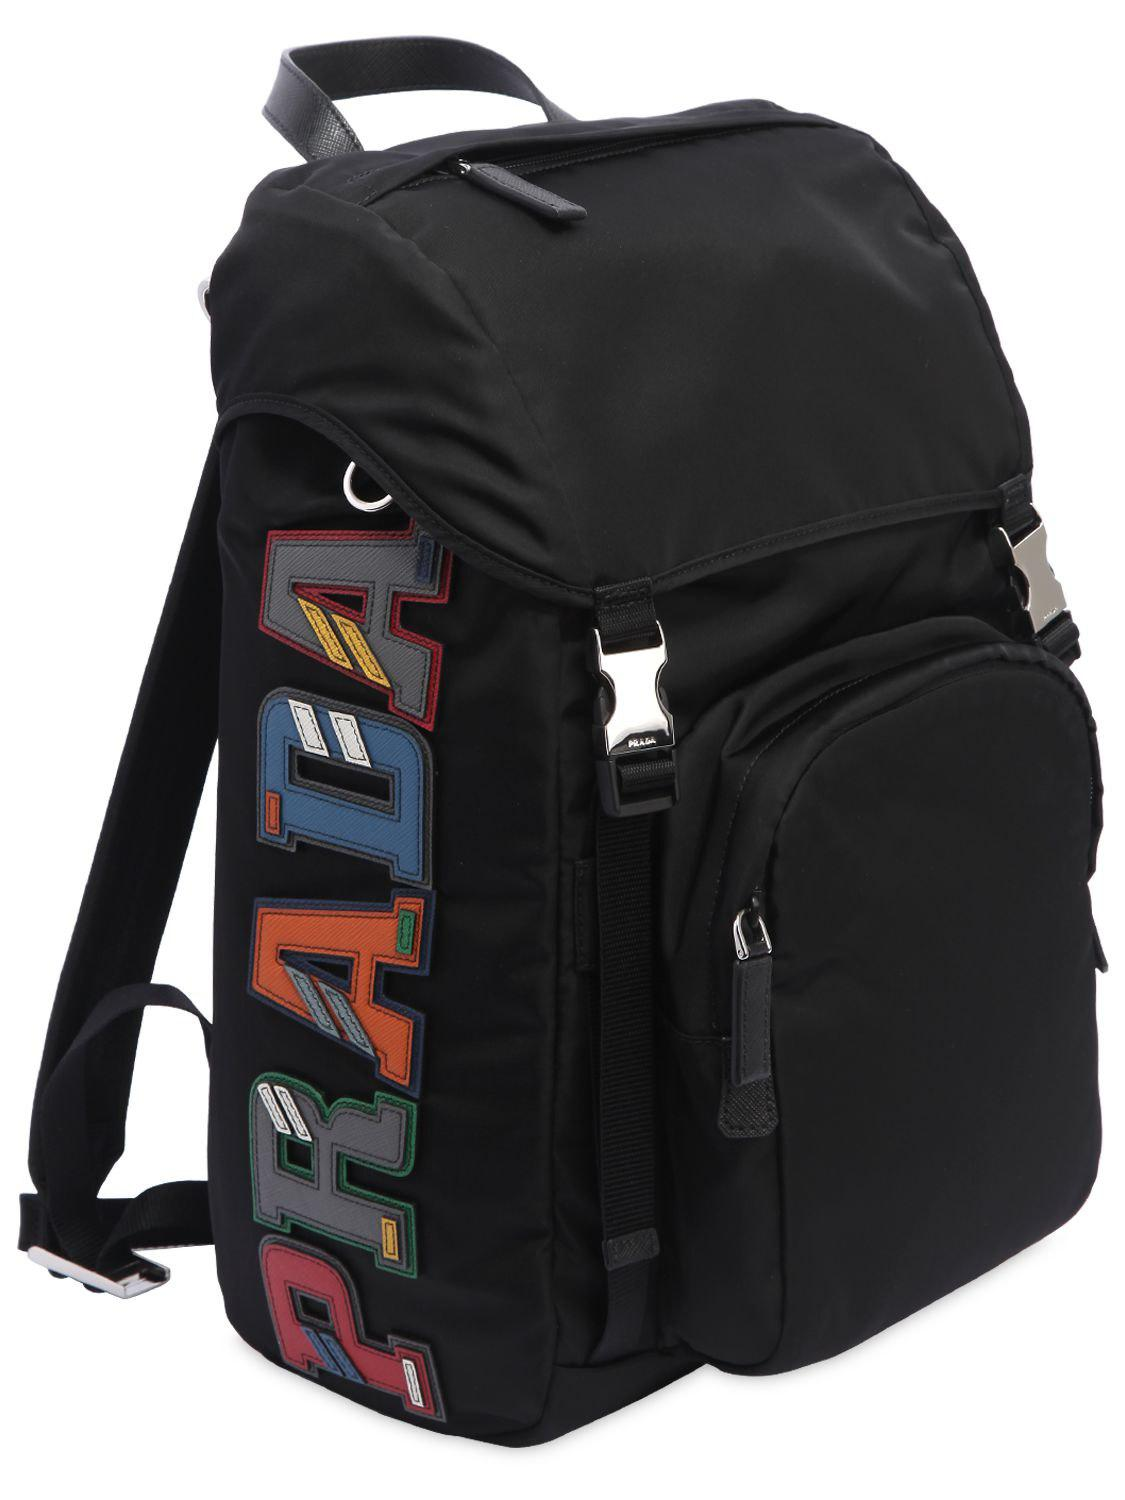 723deae8383e Prada Nylon Backpack W/ Leather Logo Patches in Black for Men - Lyst